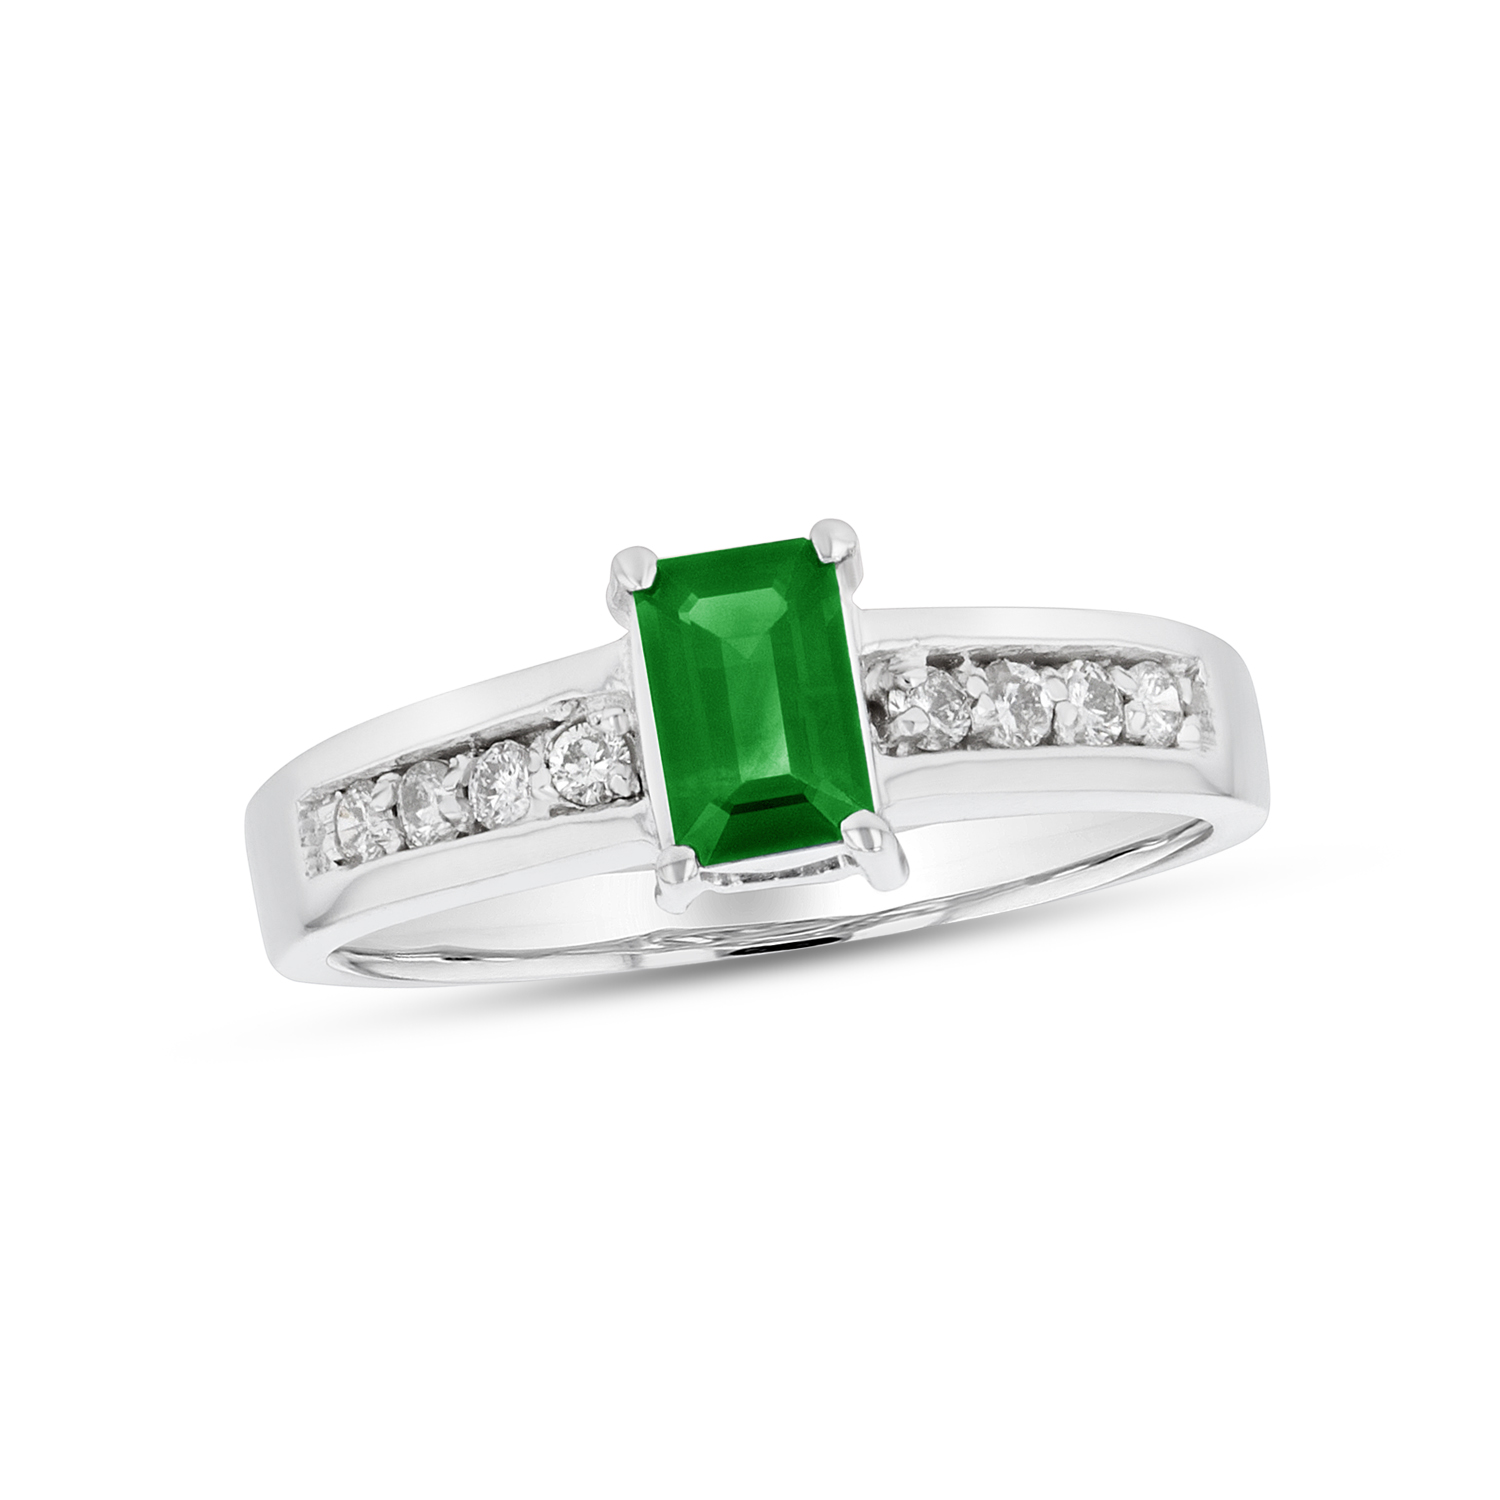 View 0.70ctw Diamond and Emerald Ring in 14k White Gold